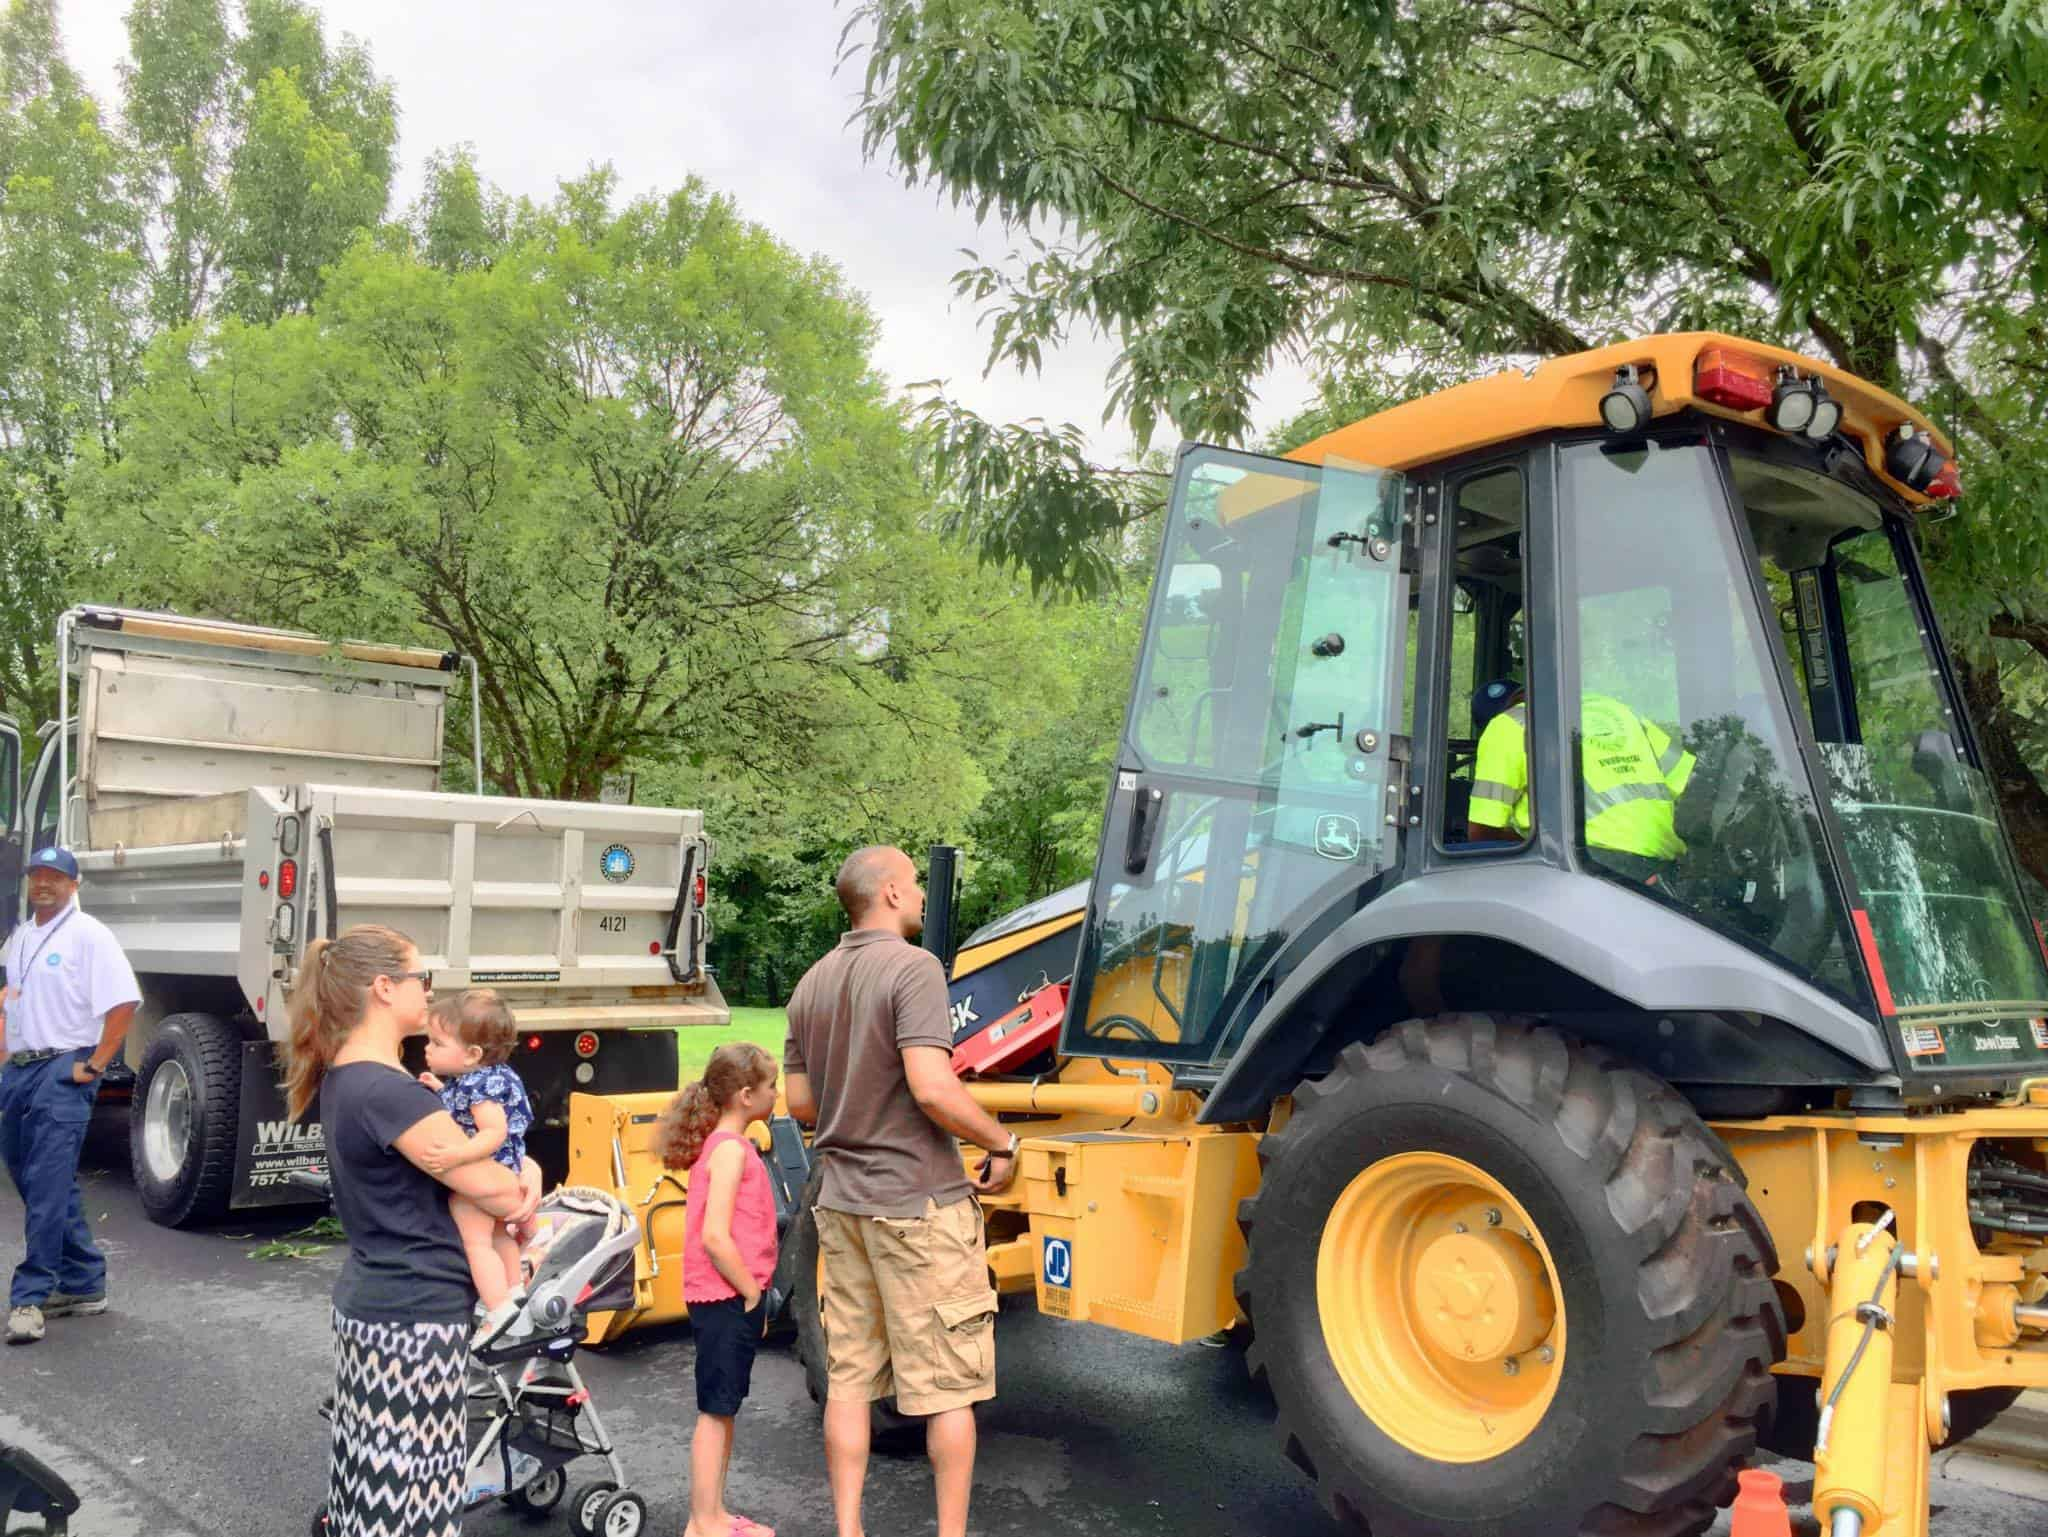 The City's Department of Transportation & Environmental Services (T&ES) will kick off National Public Works Week, (May 20-26) by hosting its second annual Open House on Saturday, May 19, from 10 a.m. to 1:30 p.m., at 2900 Business Center Drive.